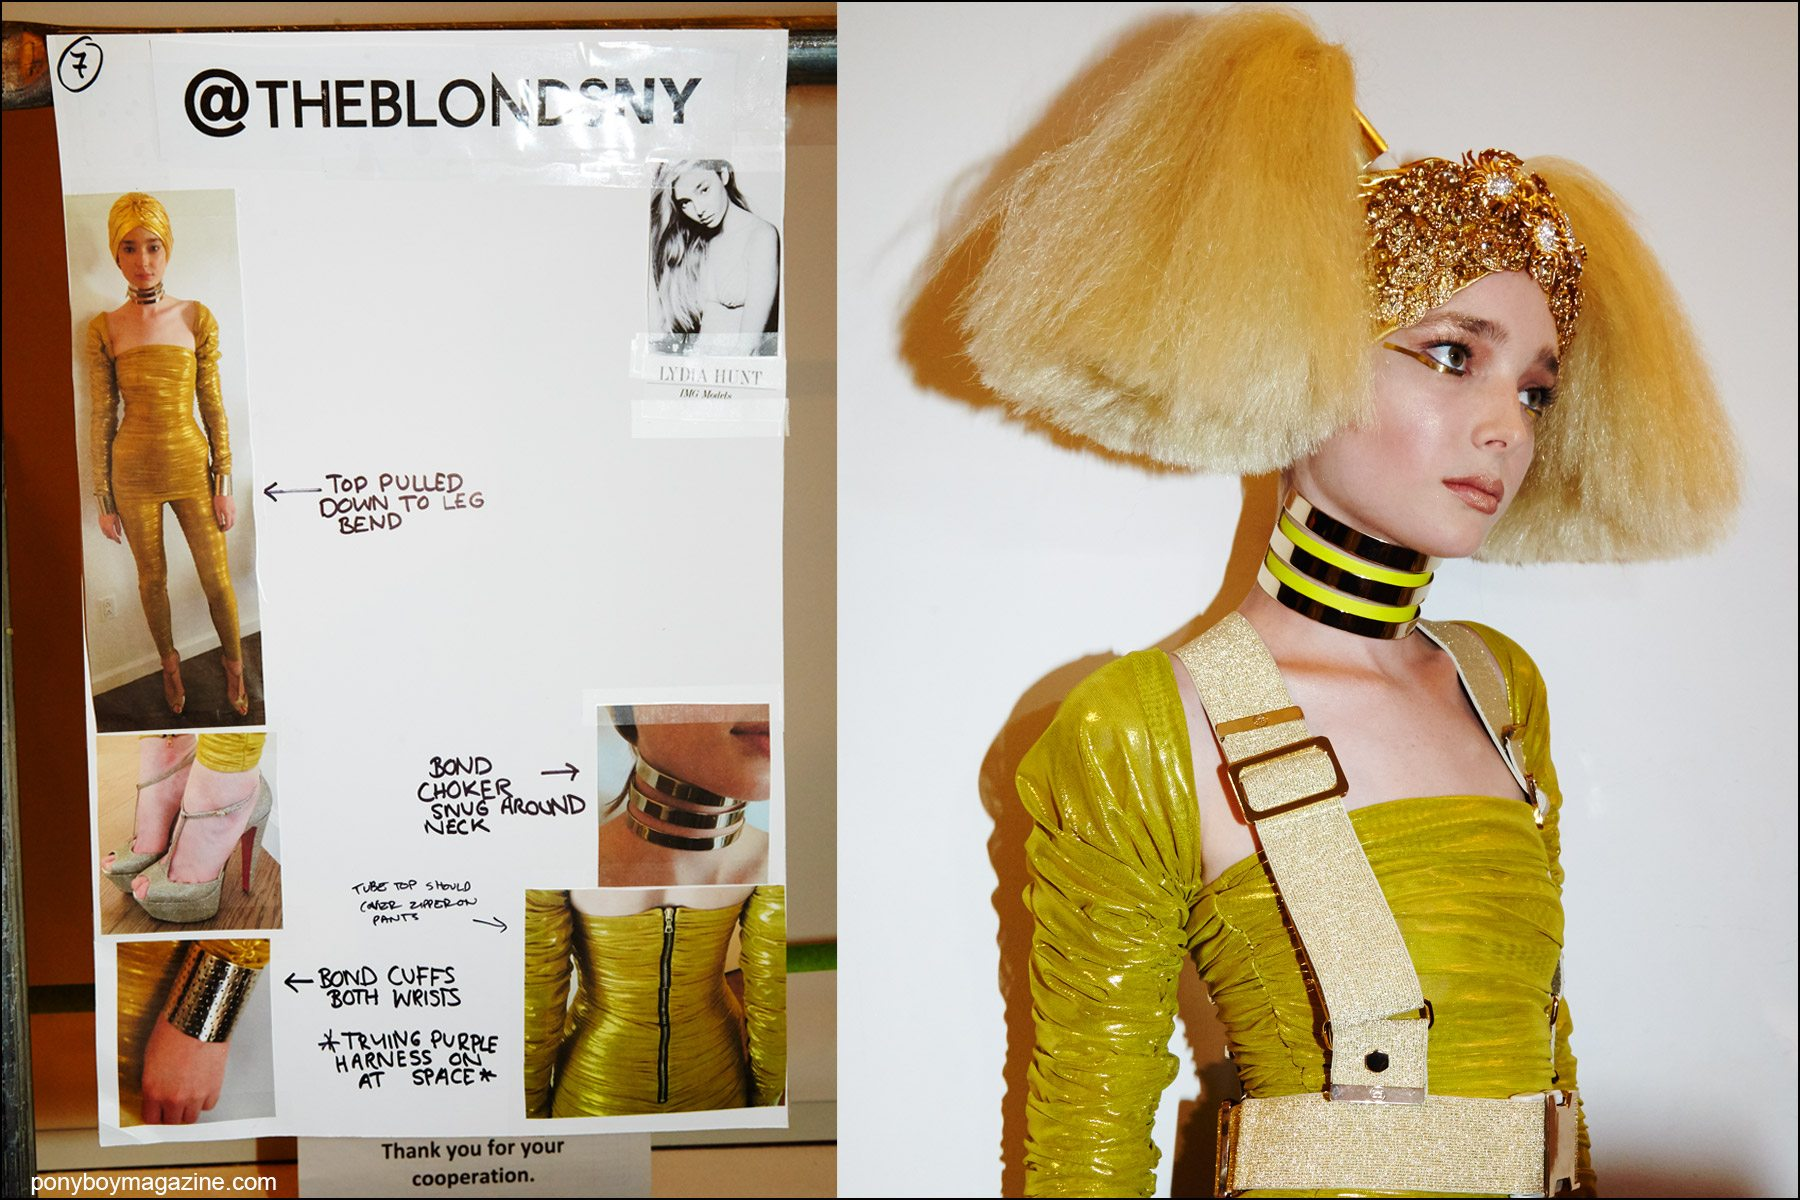 Model Lydia Hunt snapped backstage at the Blonds S/S16 runway show by Alexander Thompson for Ponyboy magazine NY.